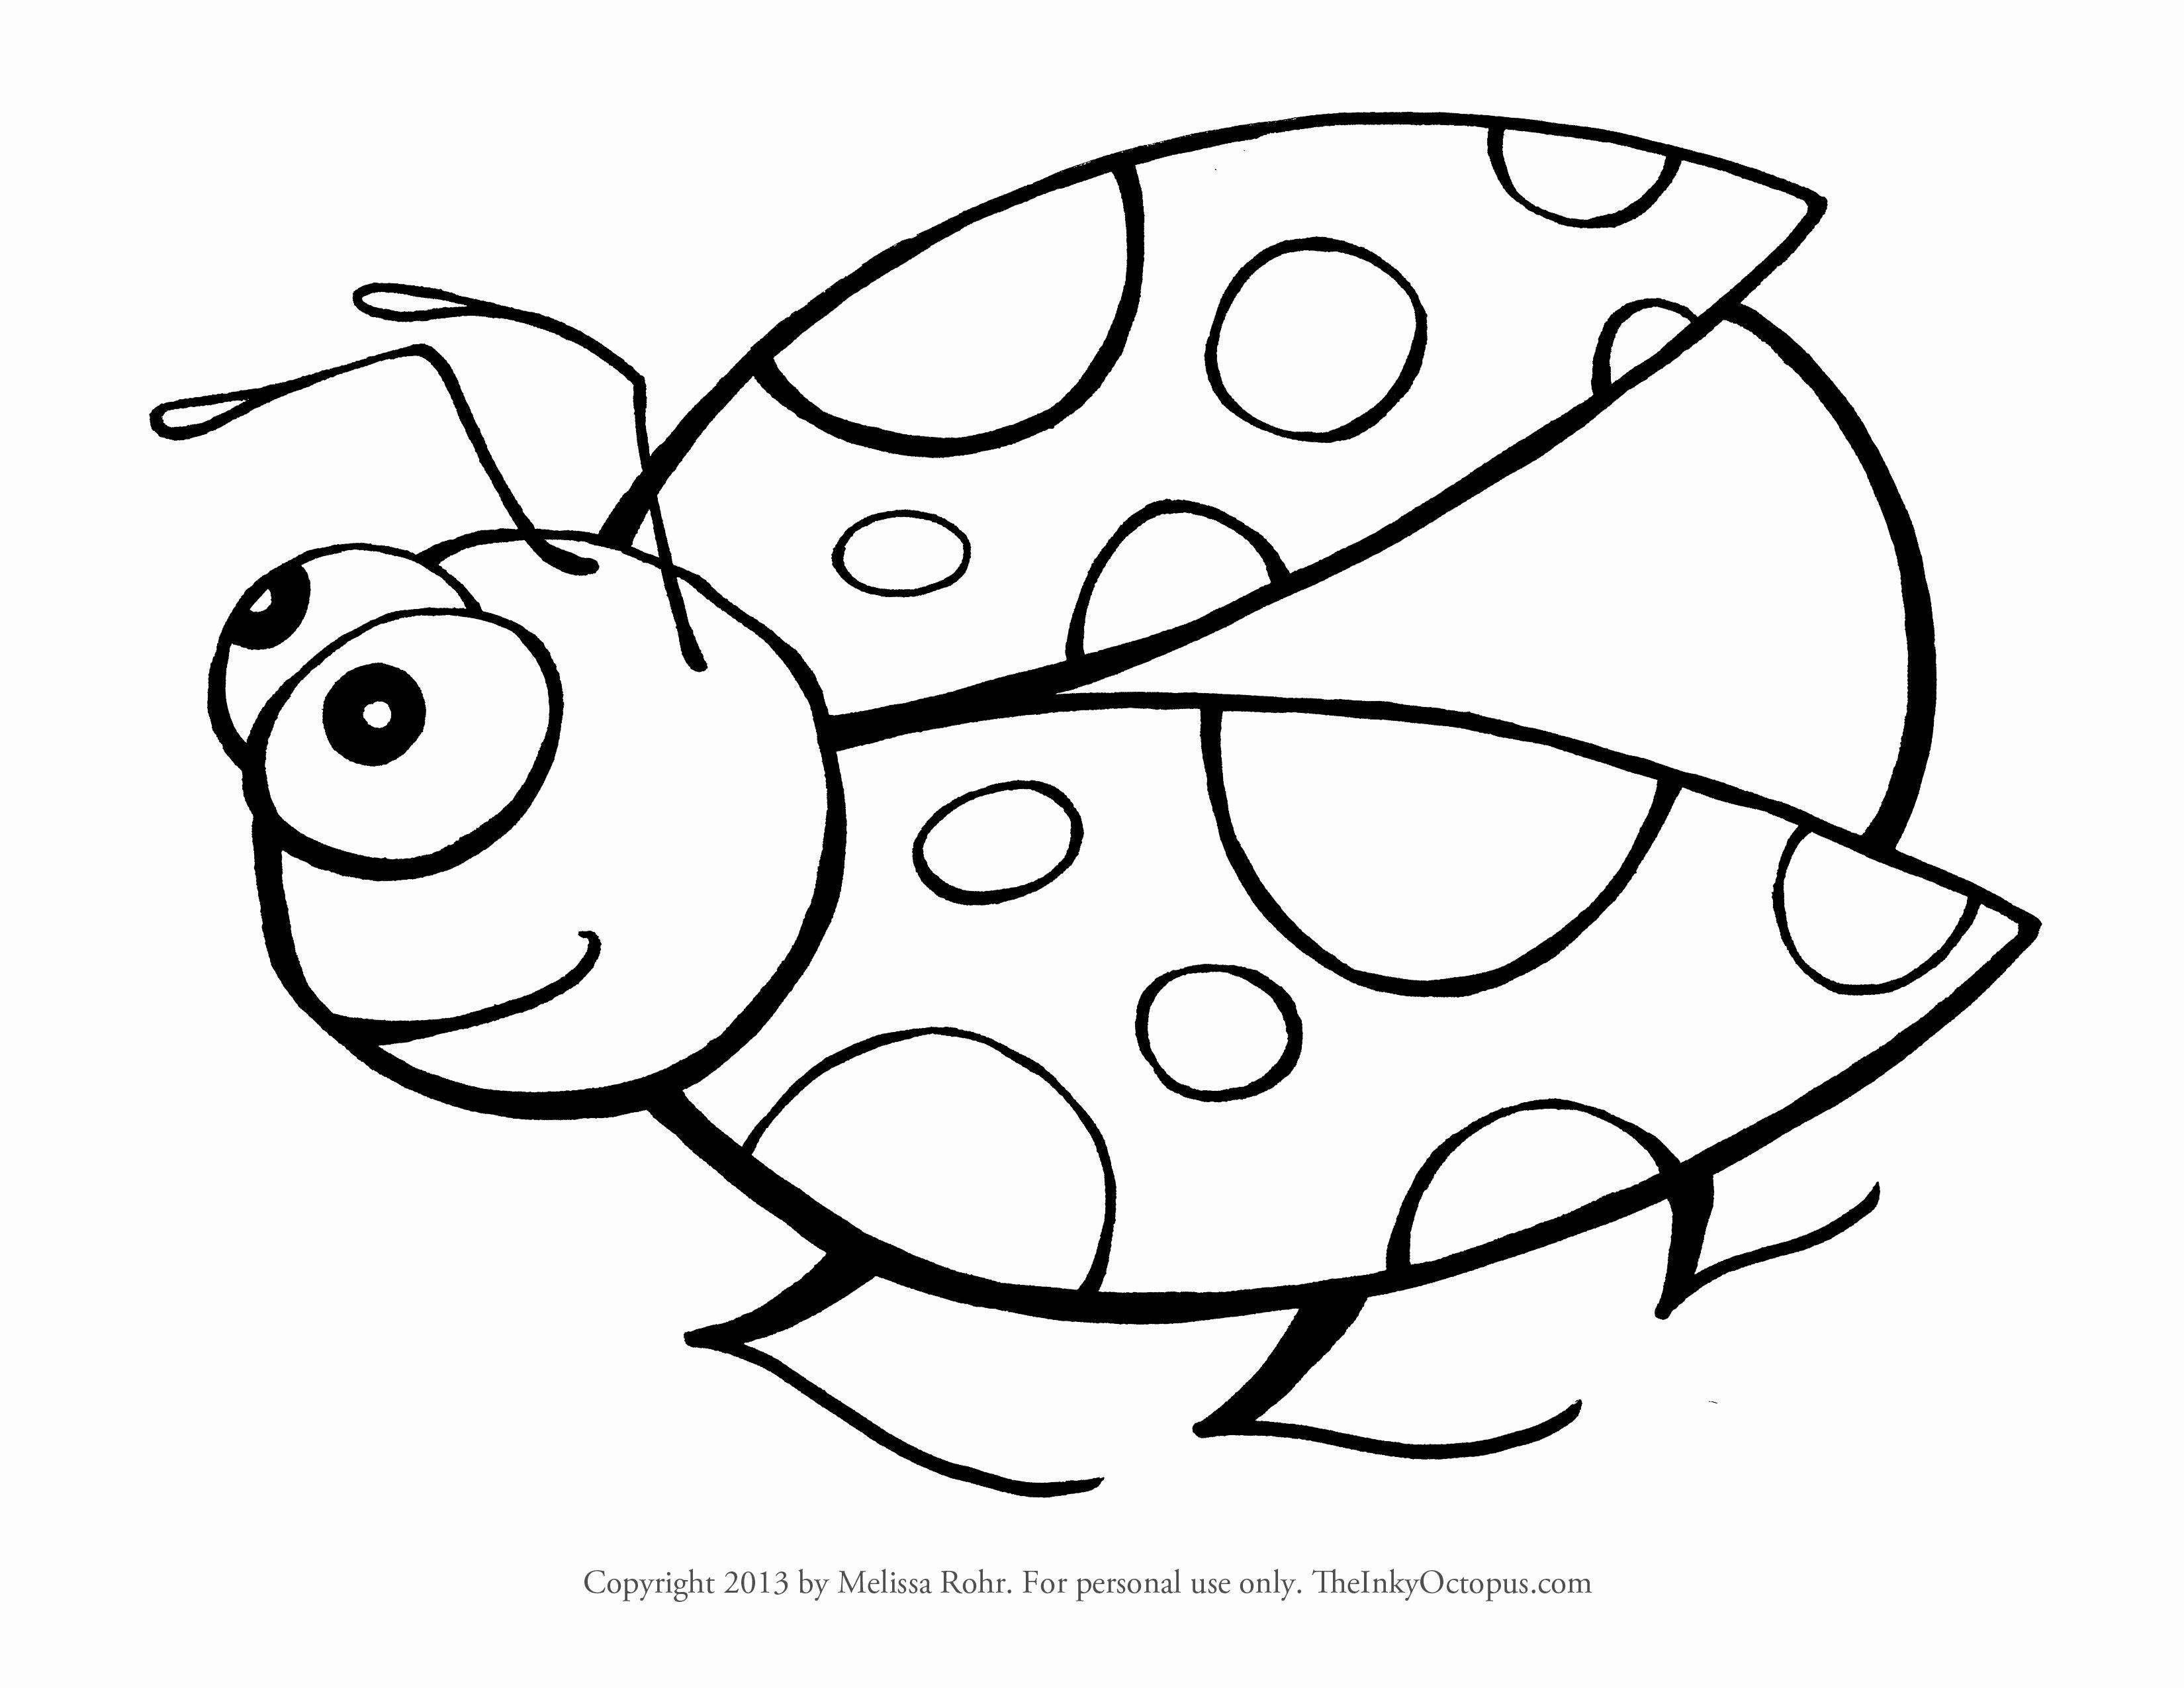 Ladybug Coloring Pages For Kids New Cute Ladybug Coloring Pages Free Printable Ladybug Insect Coloring Pages Bug Coloring Pages Ladybug Coloring Page